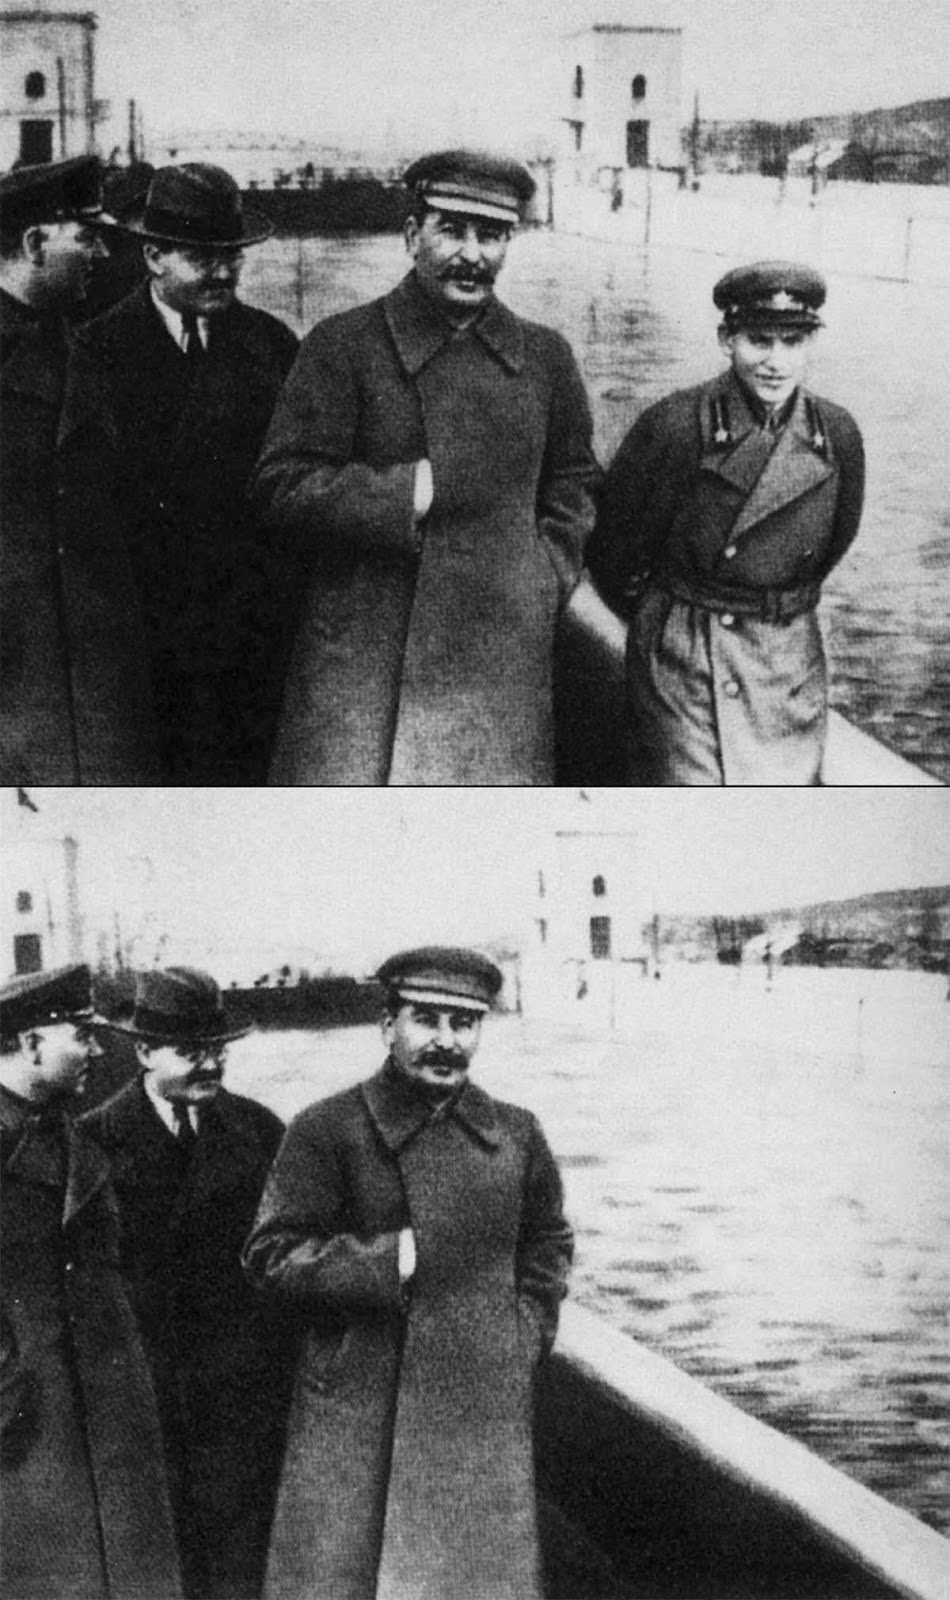 Nikolai Yezhov, pictured right of Stalin, was later removed from this photograph at the Moscow Canal.